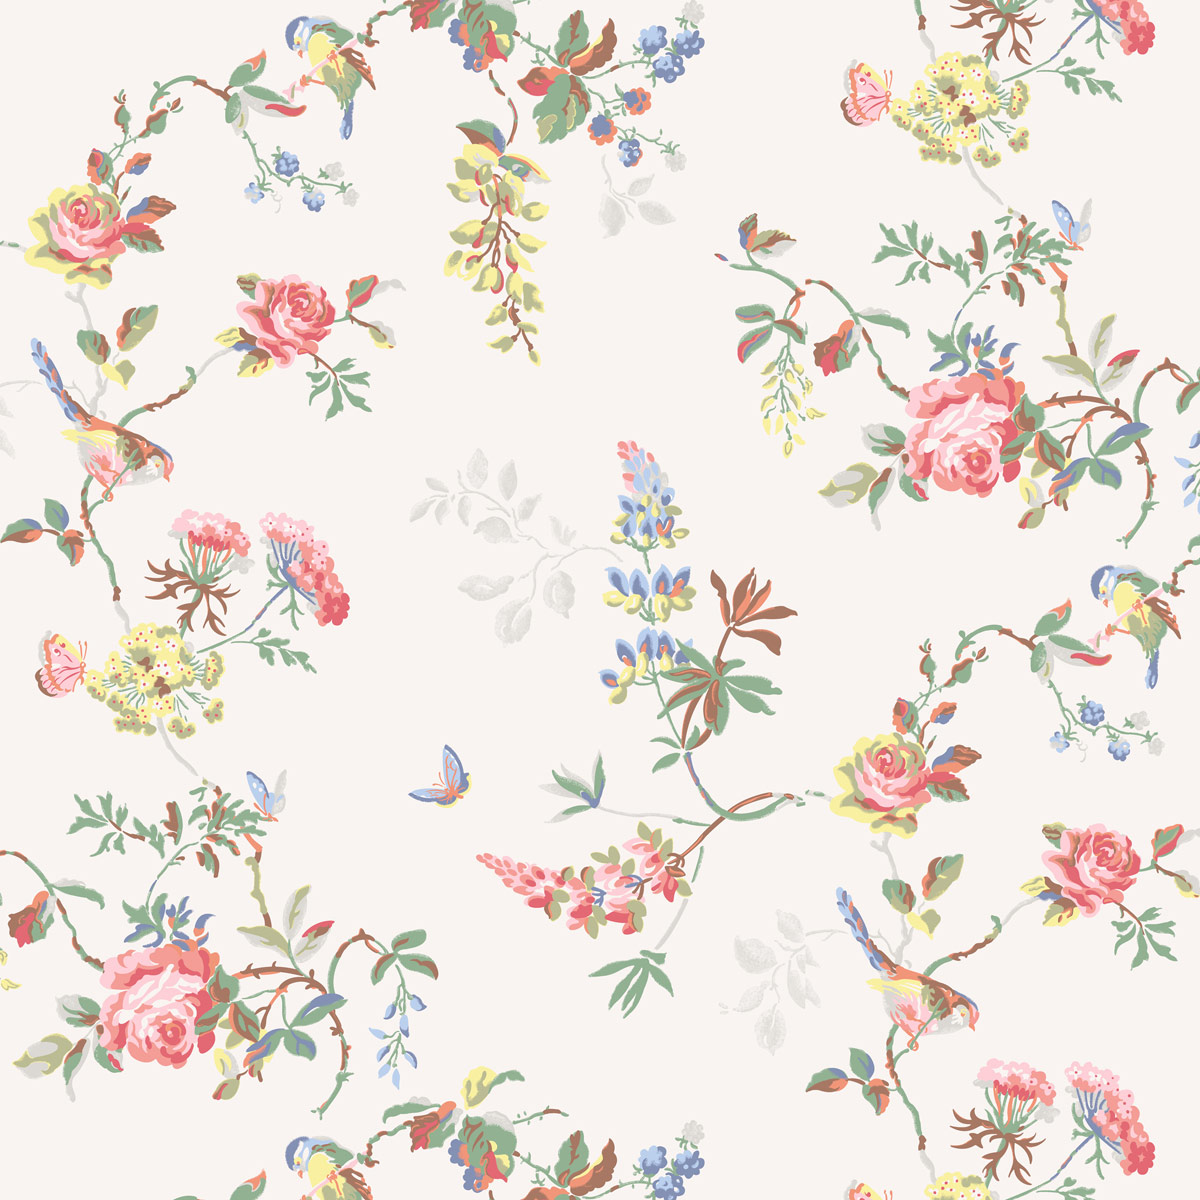 Birds & Roses Furnishing Fabric - White - Cath Kidston roses and birds impression on white fabric